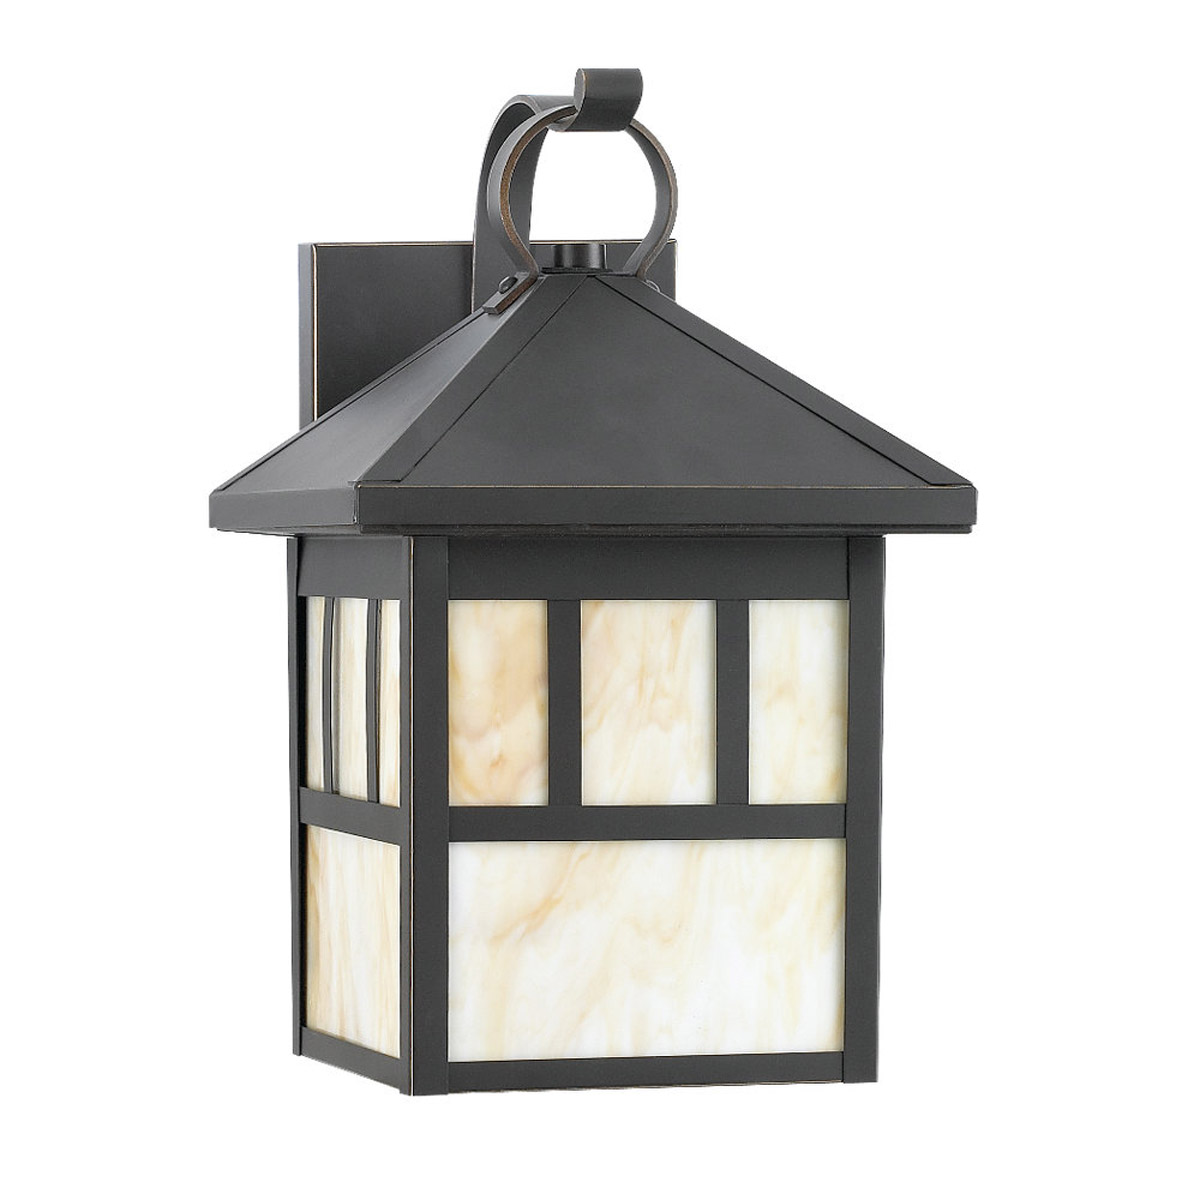 Sea Gull Lighting Prairie Statement 1 Light Outdoor Wall Lantern in Antique Bronze 8508D-71